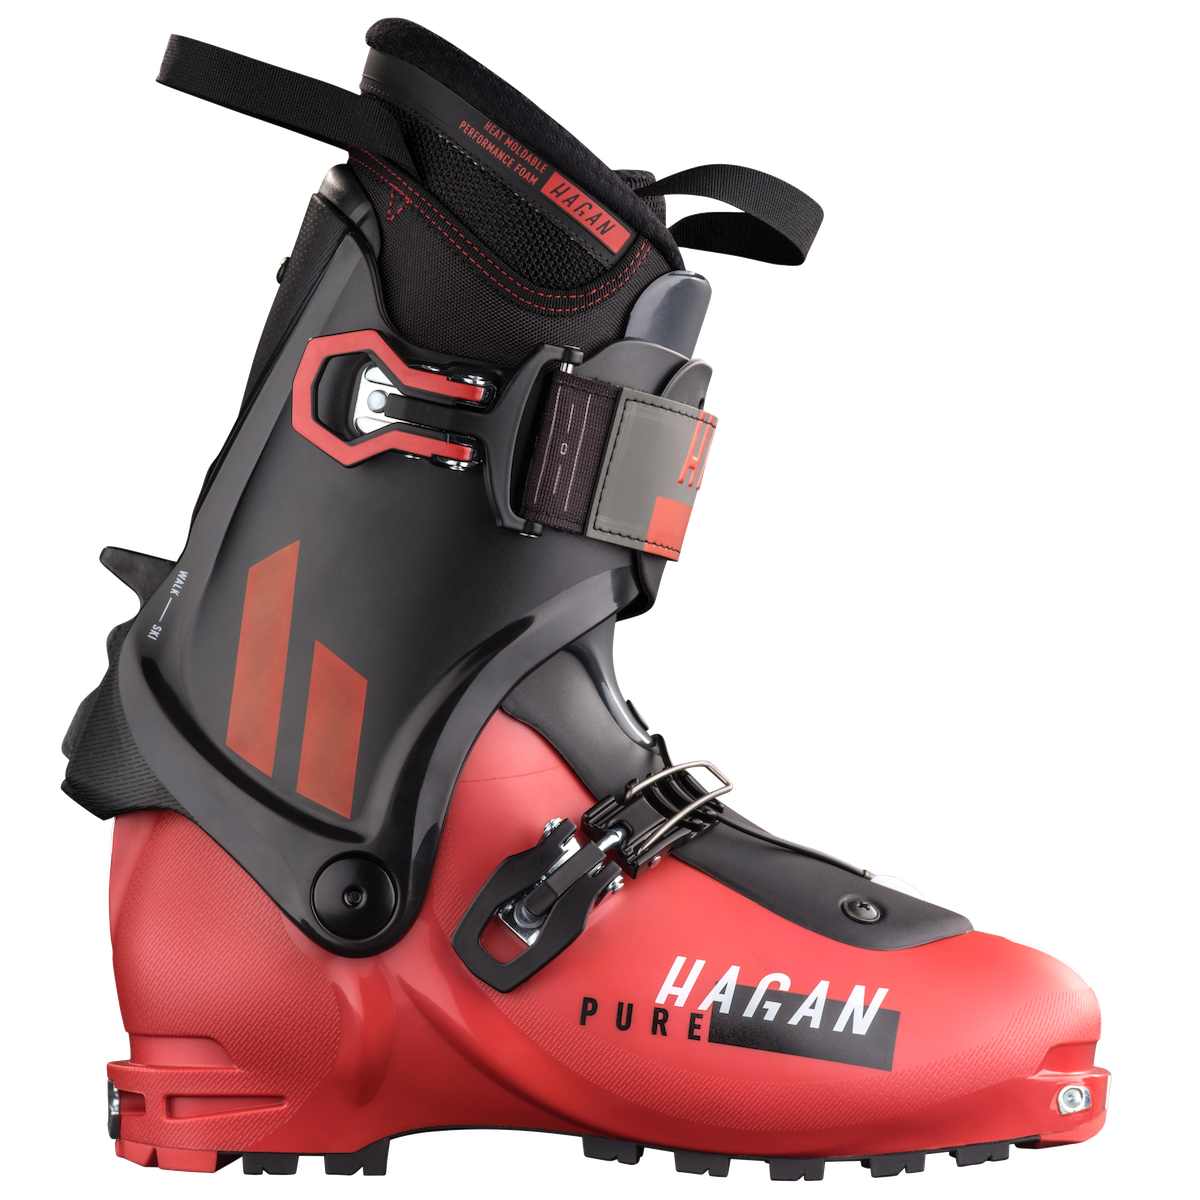 Hagan Pure Men's alpine touring backcountry skiing boot for ski mountaineering